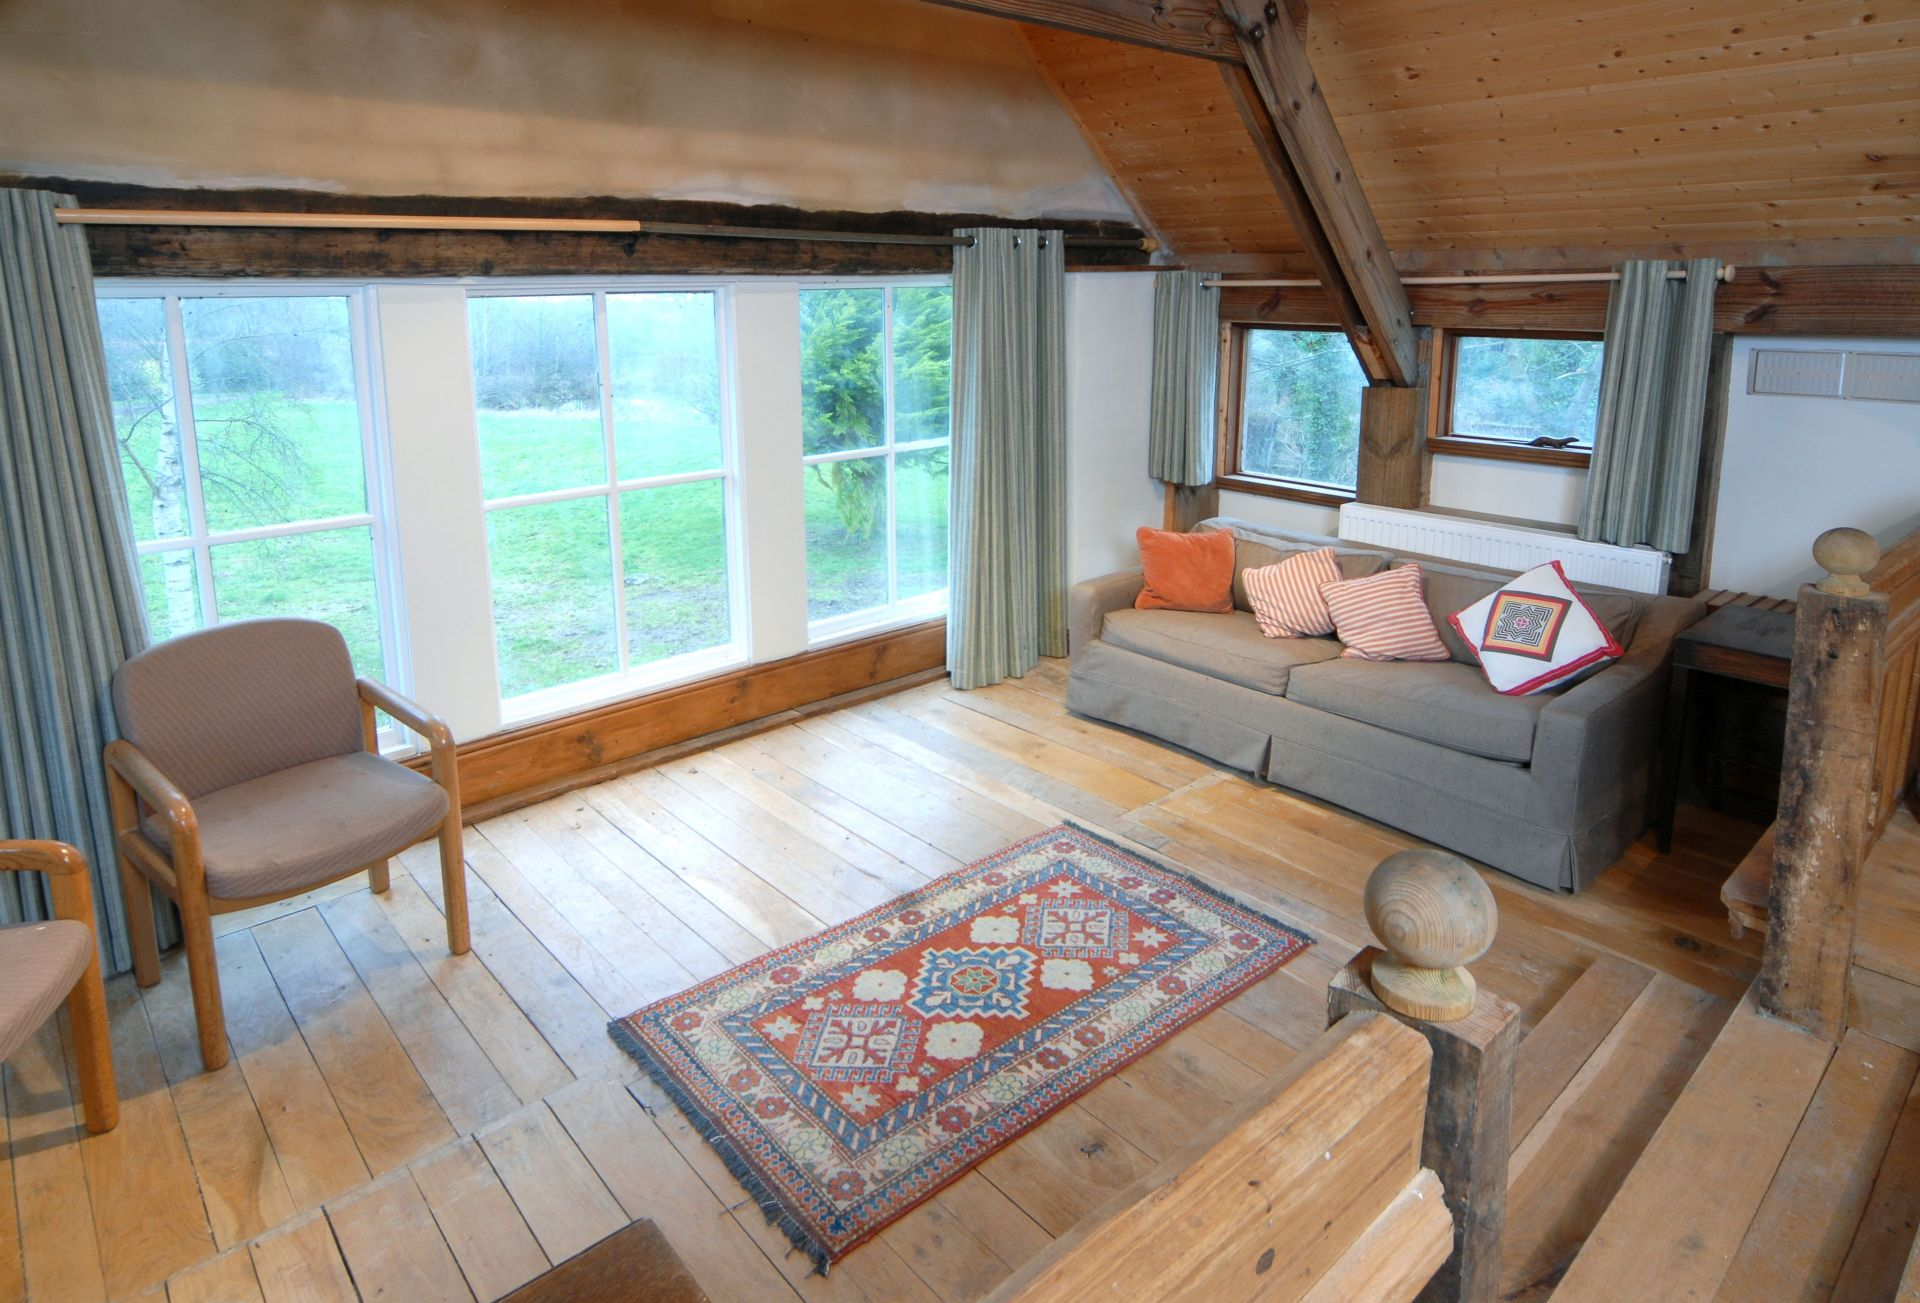 Watery Park Barn First floor: Between bedroom two and three there is a large seating area with views out onto the garden. There are 2 sofa beds in this area which can be curtained off and used to accommodate extra guests (max two) at an additional Ã'Â